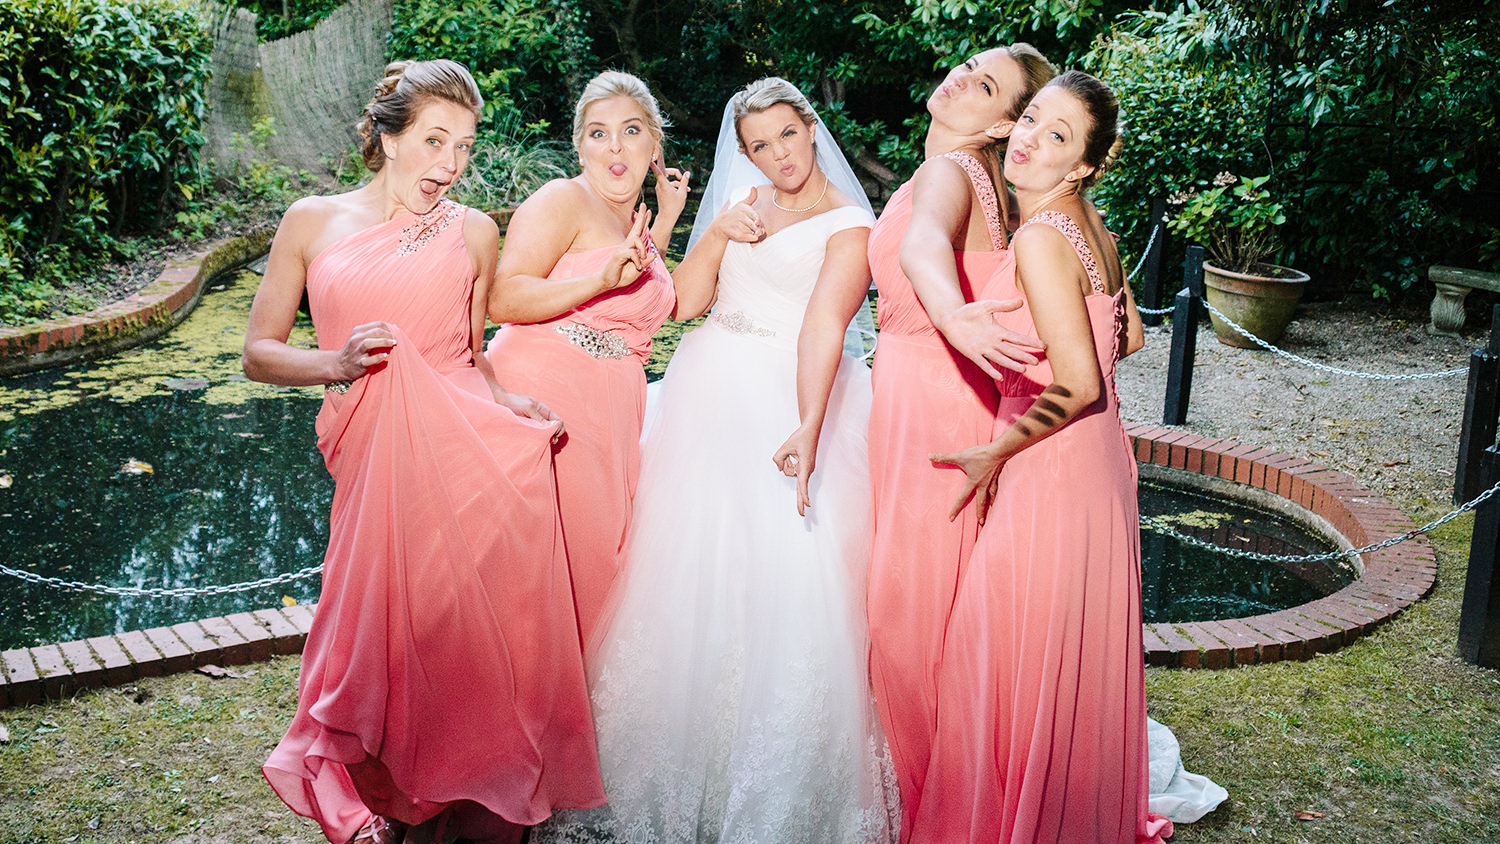 Make it your perfect wedding by dancing with your bridesmaids.